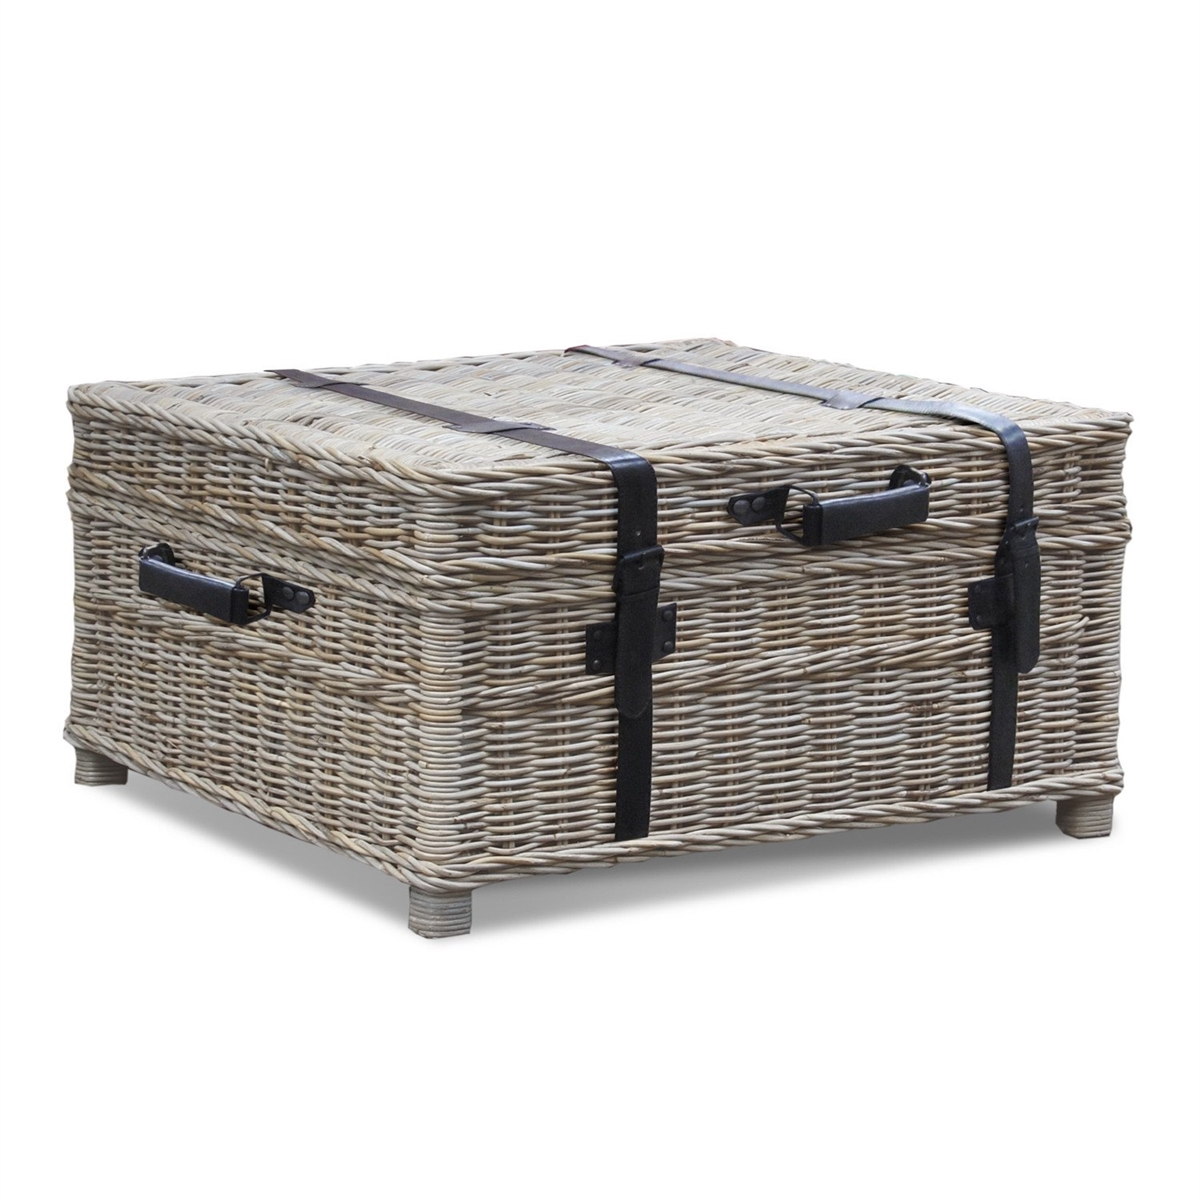 small oval willow basket for gift giving storage.htm woven coffee table trunk gray wicker coffee table trunk square  woven coffee table trunk gray wicker